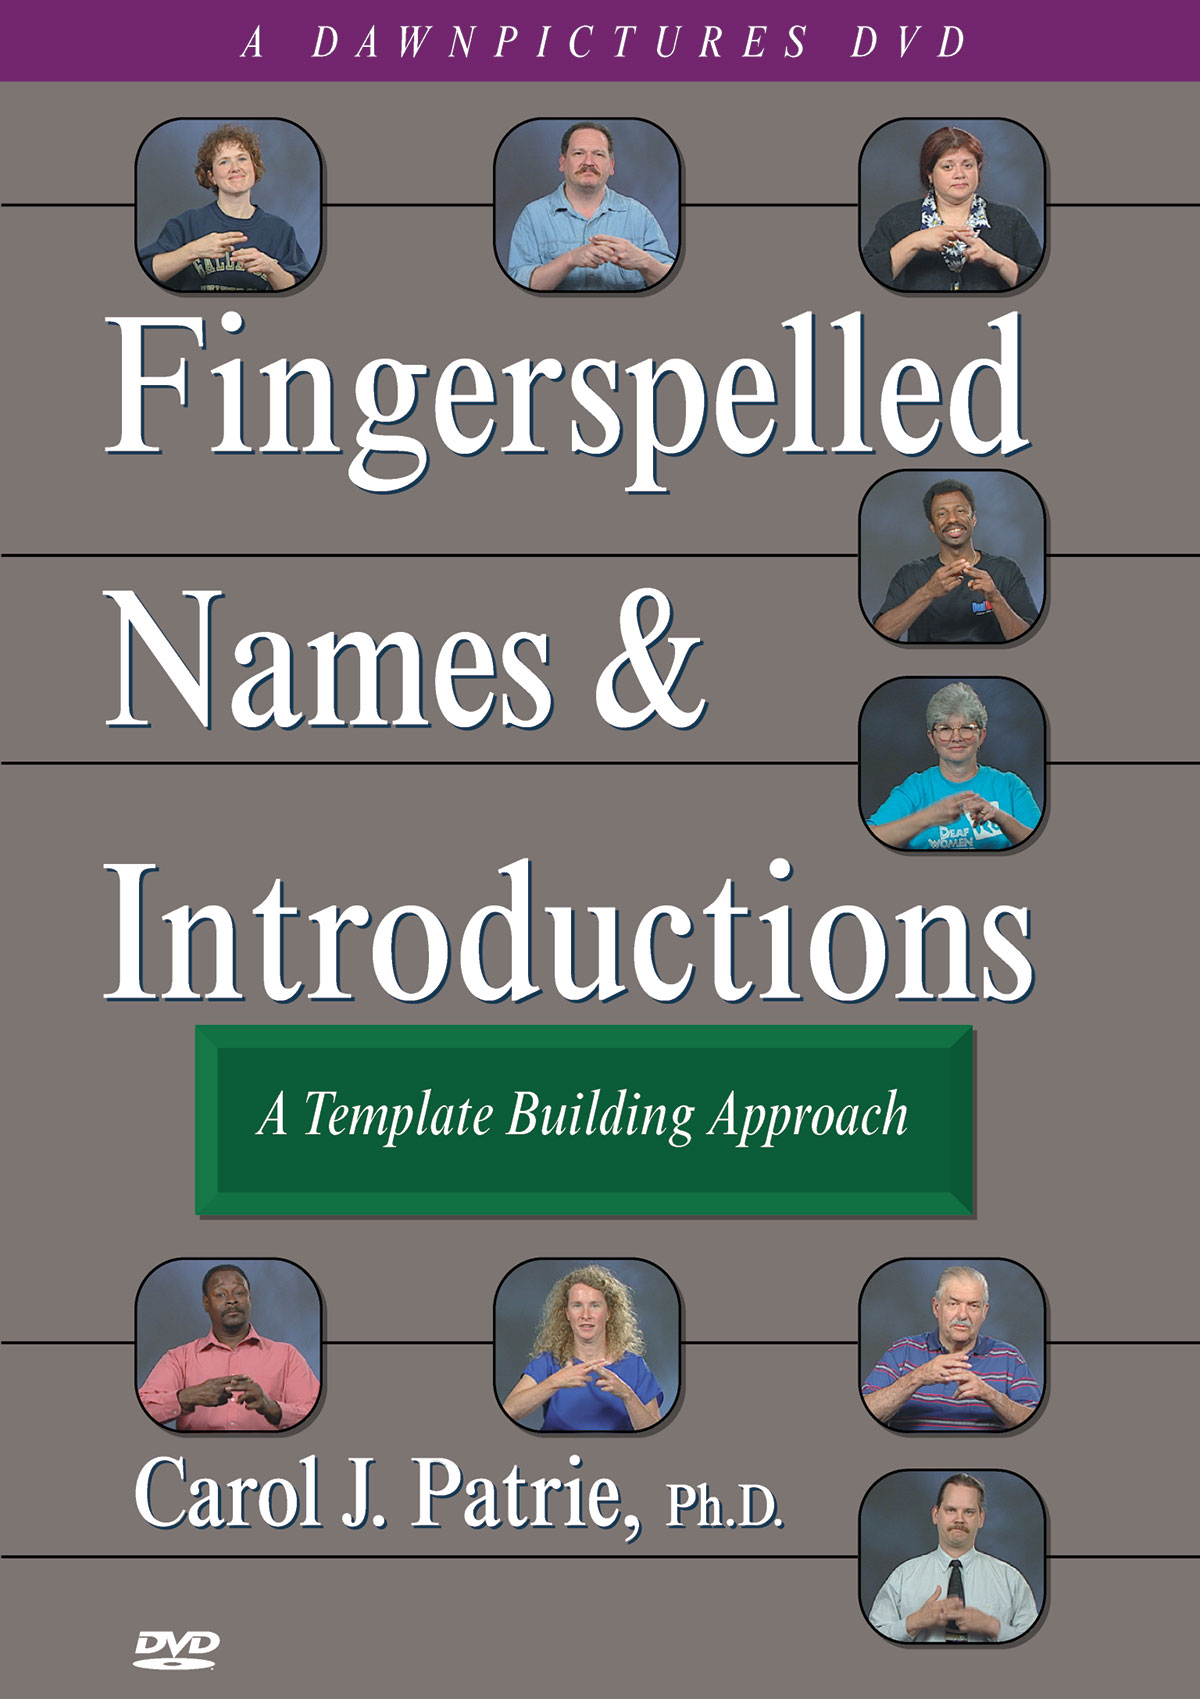 Fingerspelled Names & Introductions: A Template Building Approach